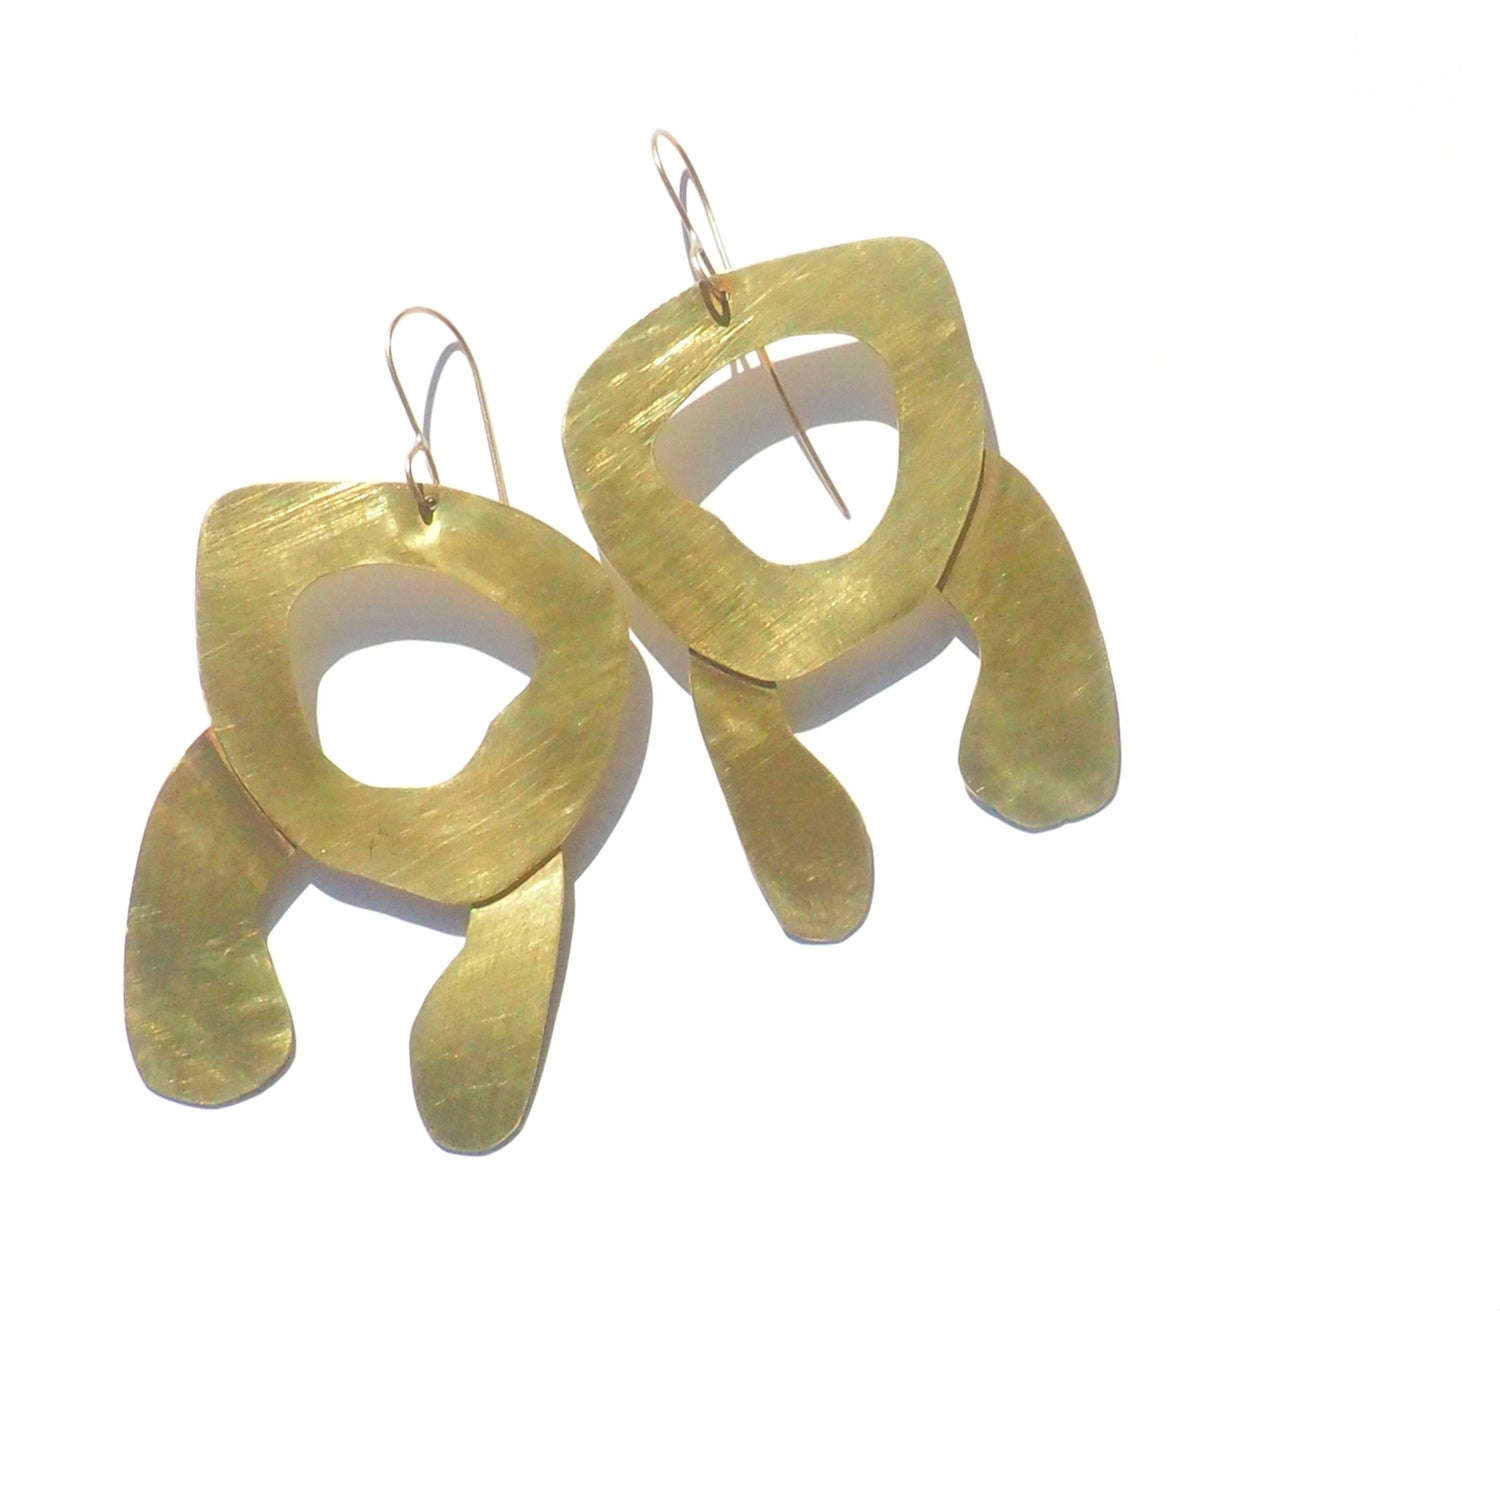 Image of Irregular Brass Shapes Earrings II